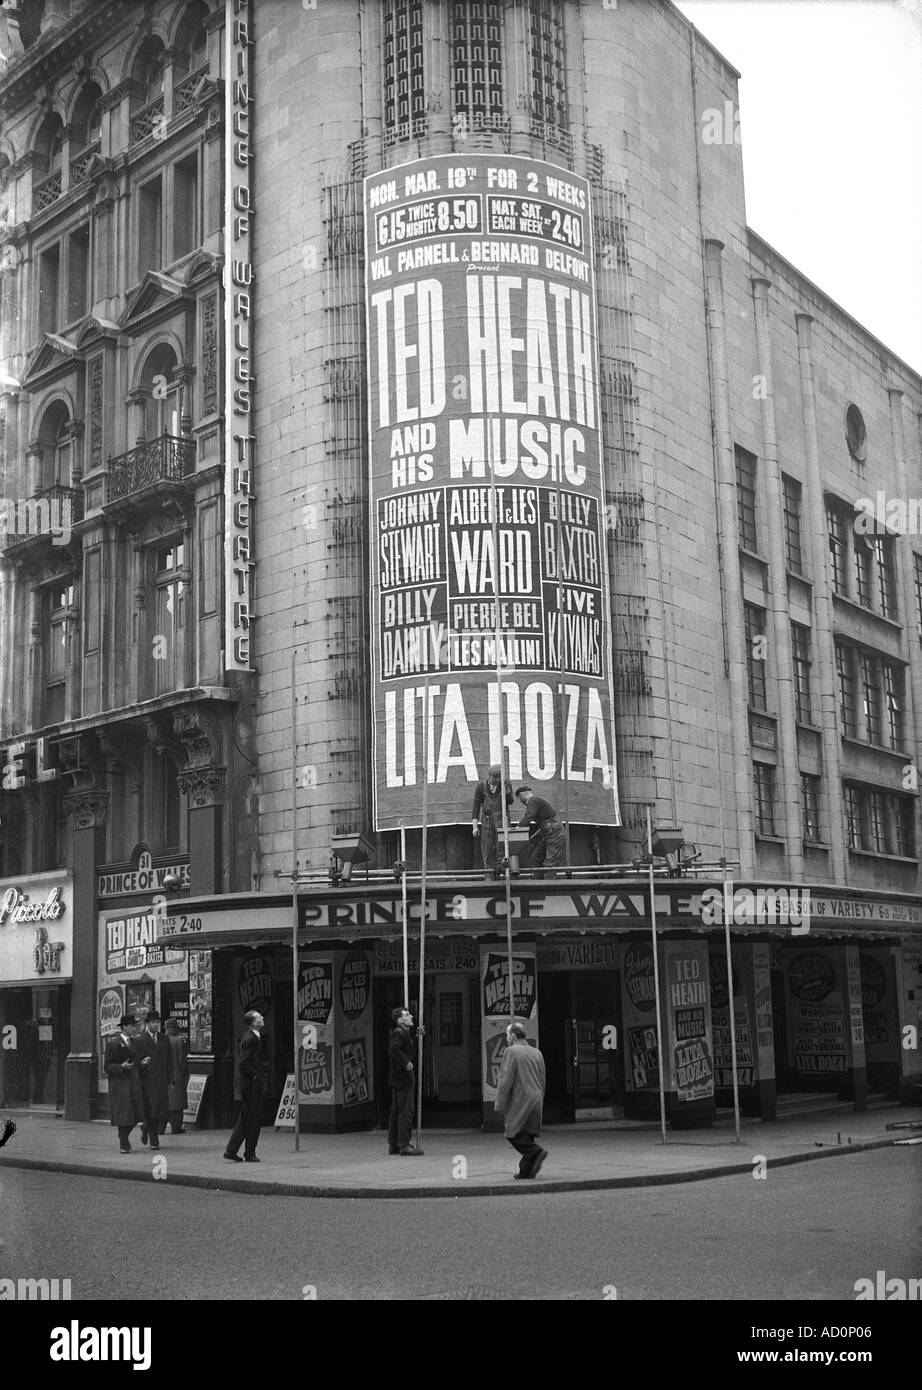 Billboard advertising Ted Heath and his Music outside Prince of Wales Theatre. Photo by Harry Hammond. UK, 1956. - Stock Image